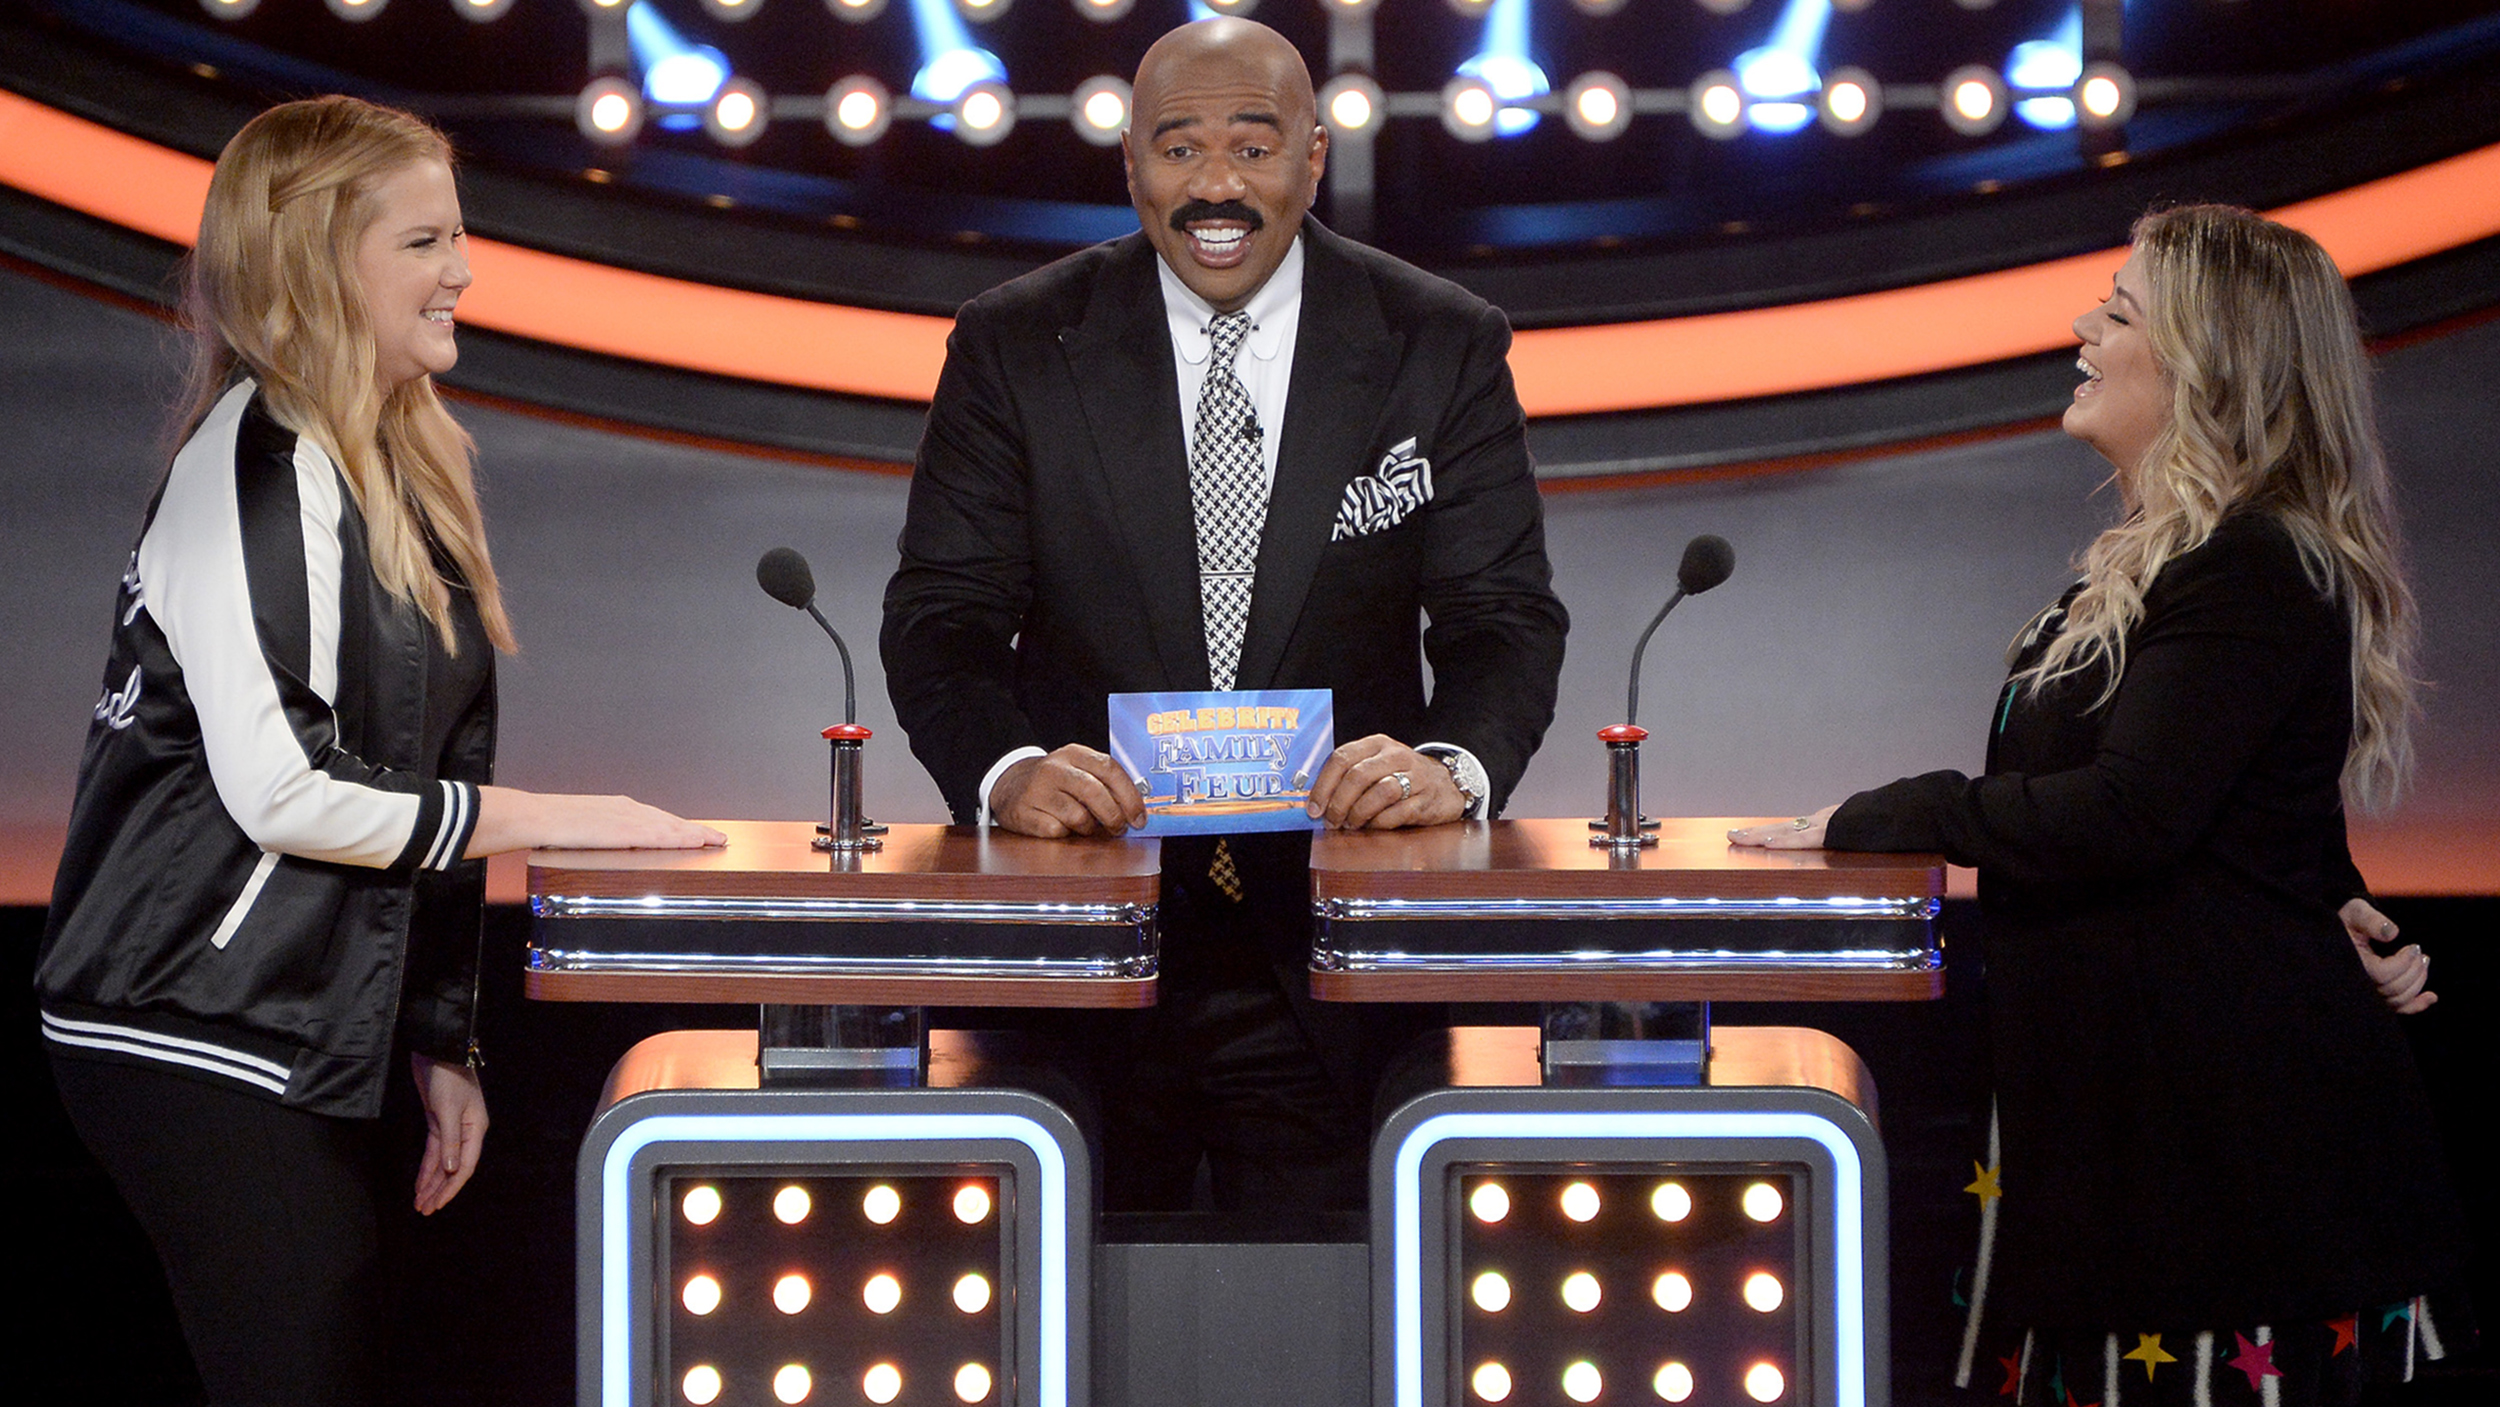 Watch Celebrity Family Feud Episodes - Watch Series Online